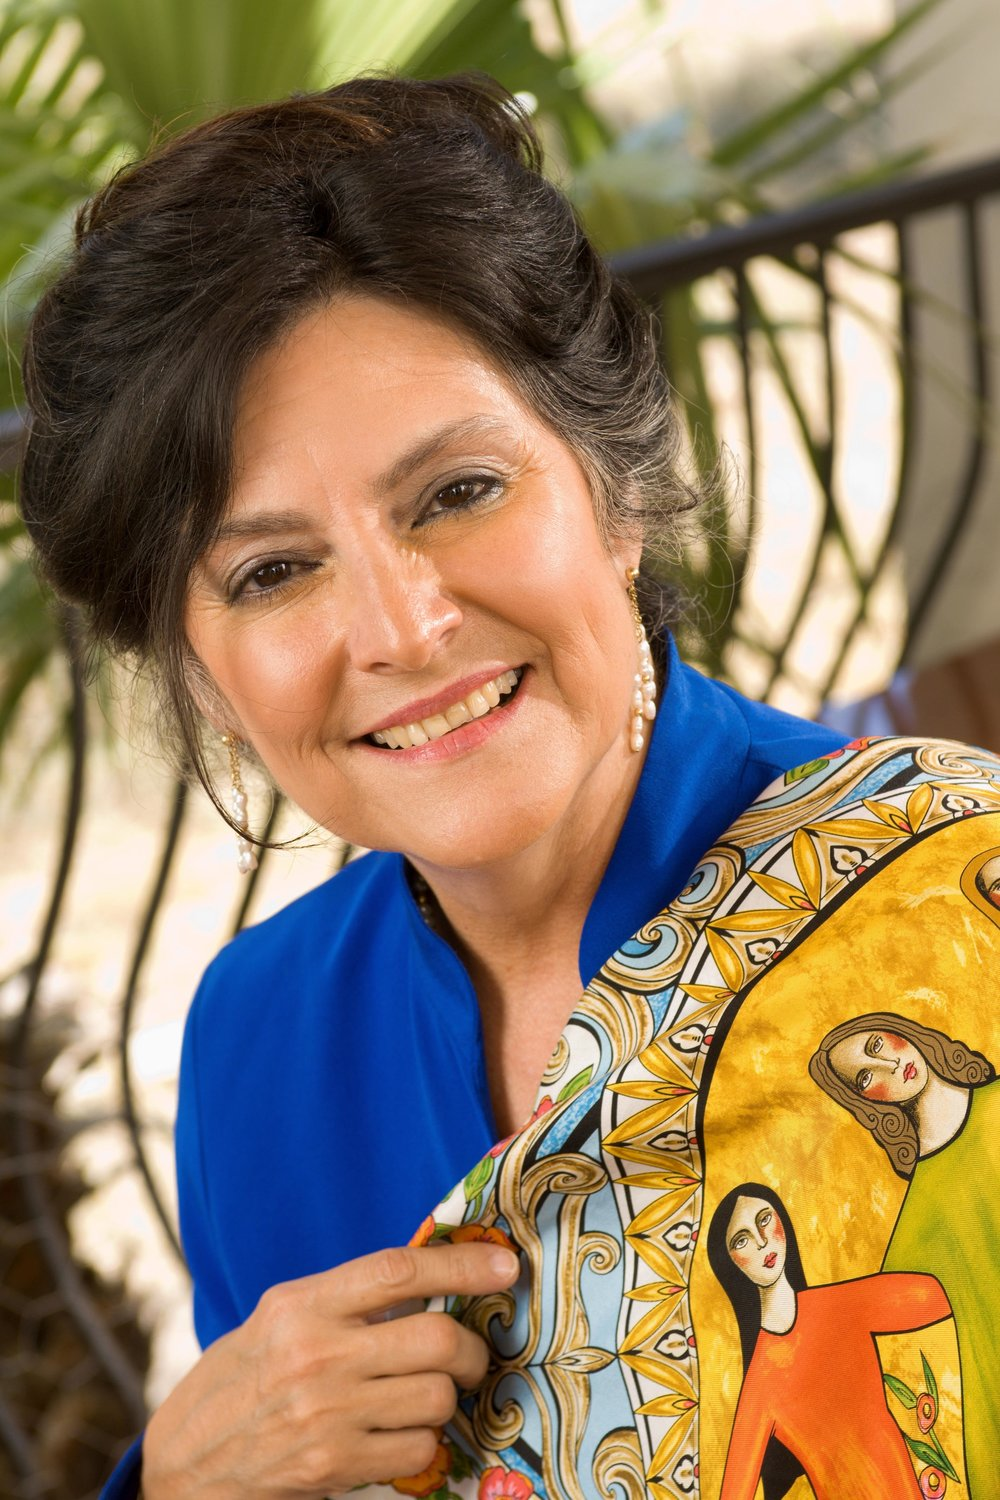 NORA DE HOYOS COMSTOCK   Dr. Comstock is the national and international founder of Las Comadres Para Las Americas. She retired from the President/CEO position but maintains a position on the board. Nora is an entrepreneur, business leader, and pioneer in utilizing social media to build a community for Latinas. She currently leads a business development consultancy known as Comstock Connections and is an elected official serving as Austin Community College Trustee for a 6 year term.